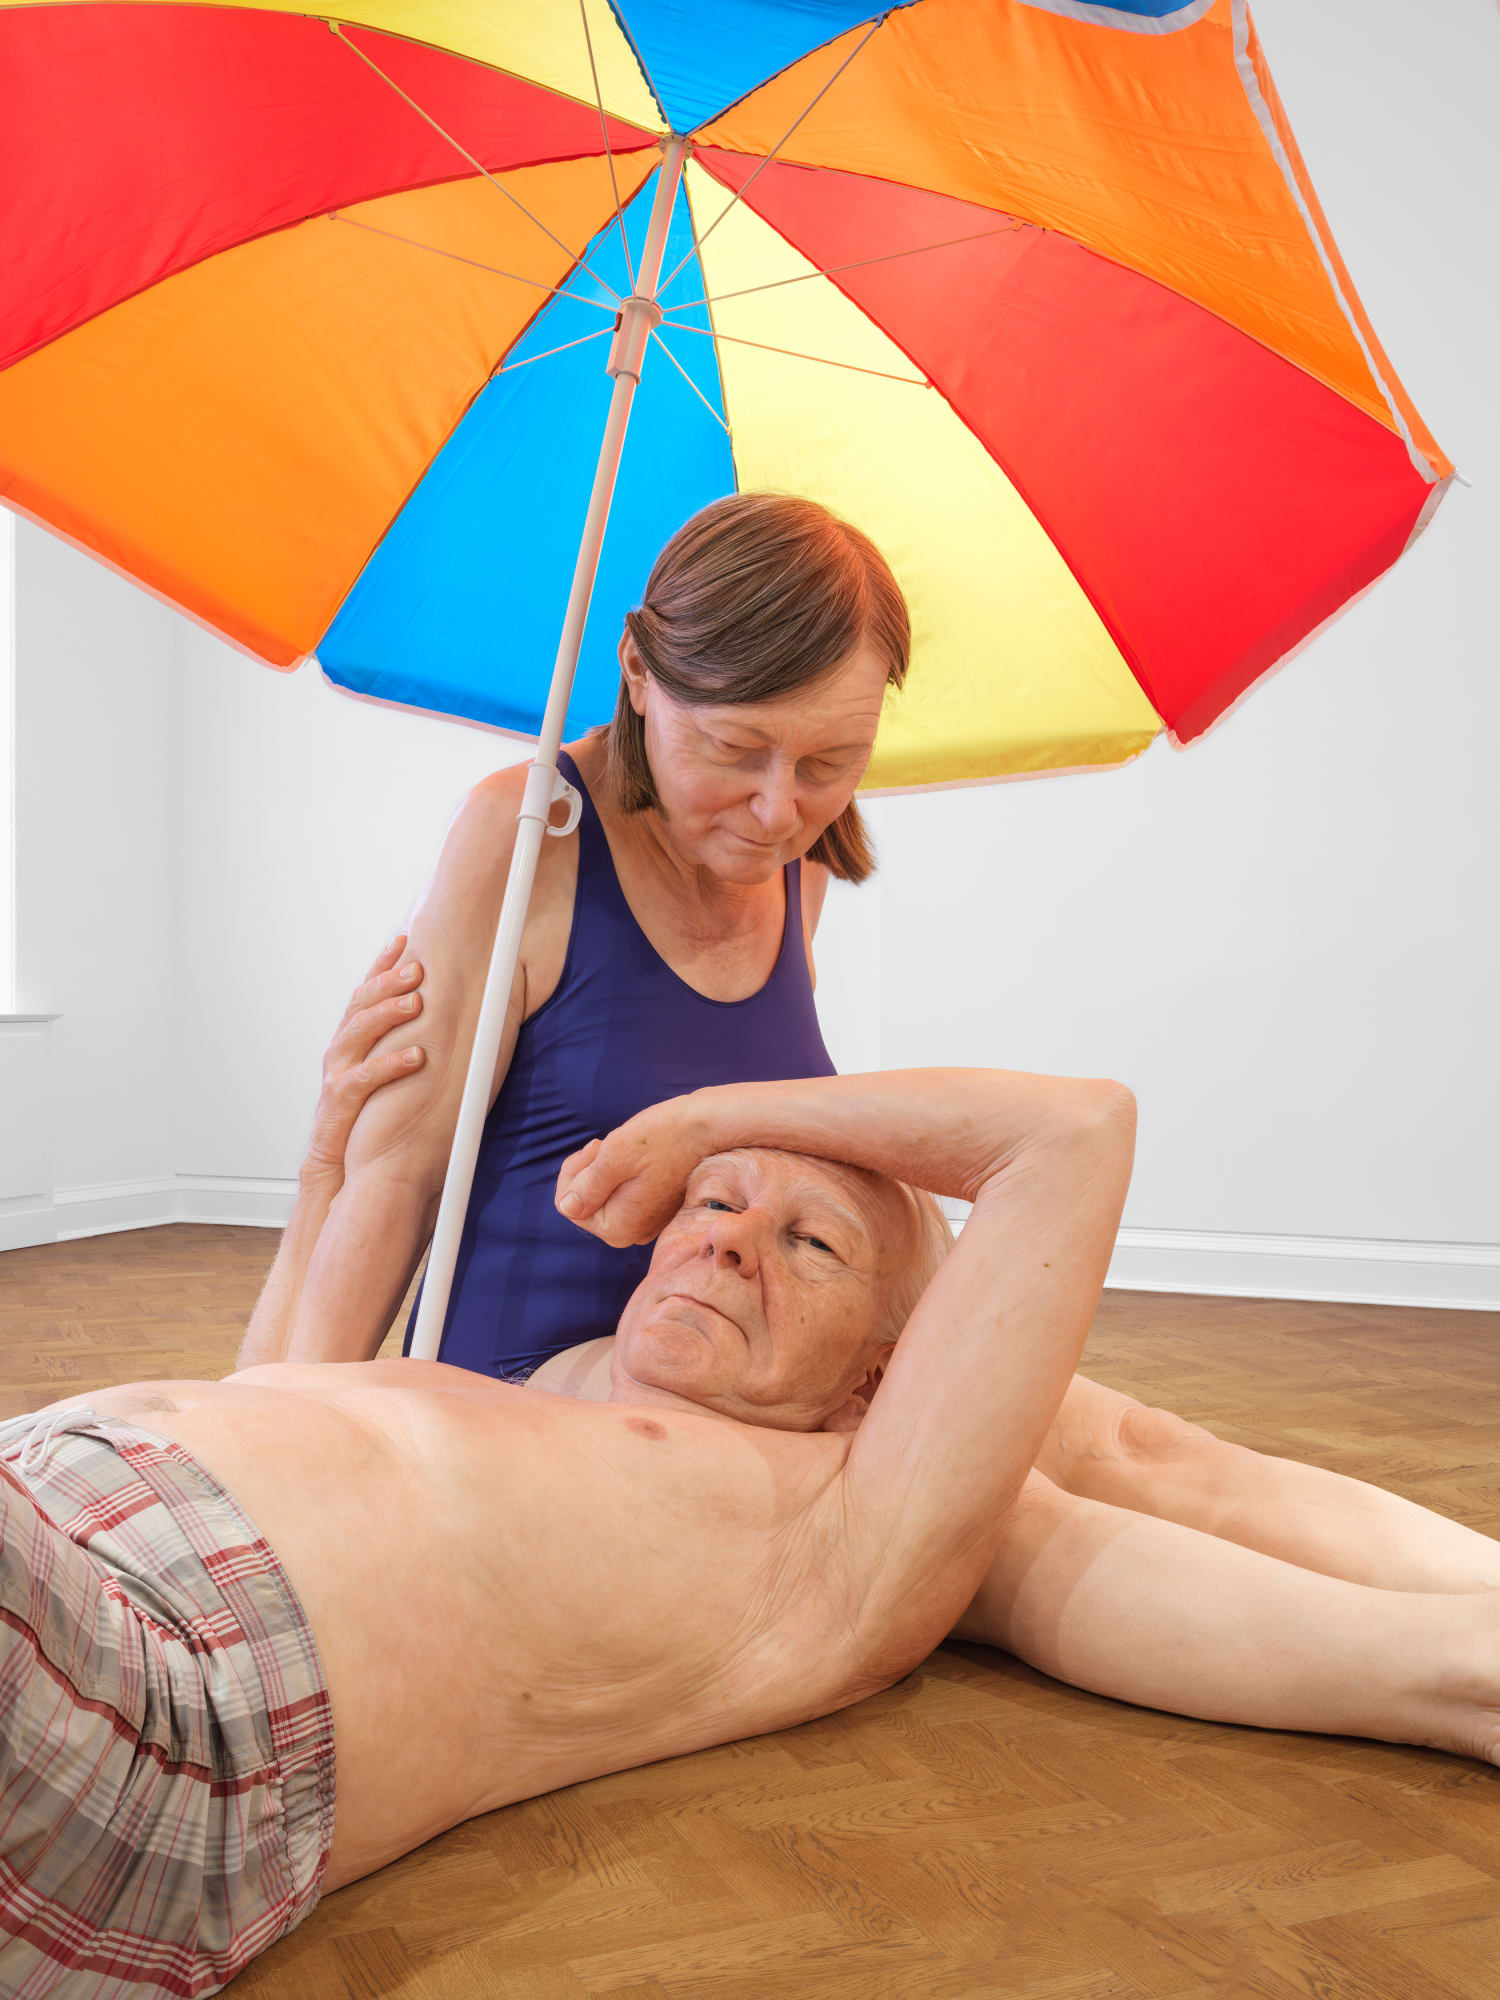 Ron Mueck 25 Years Of Sculpture 1996—2021